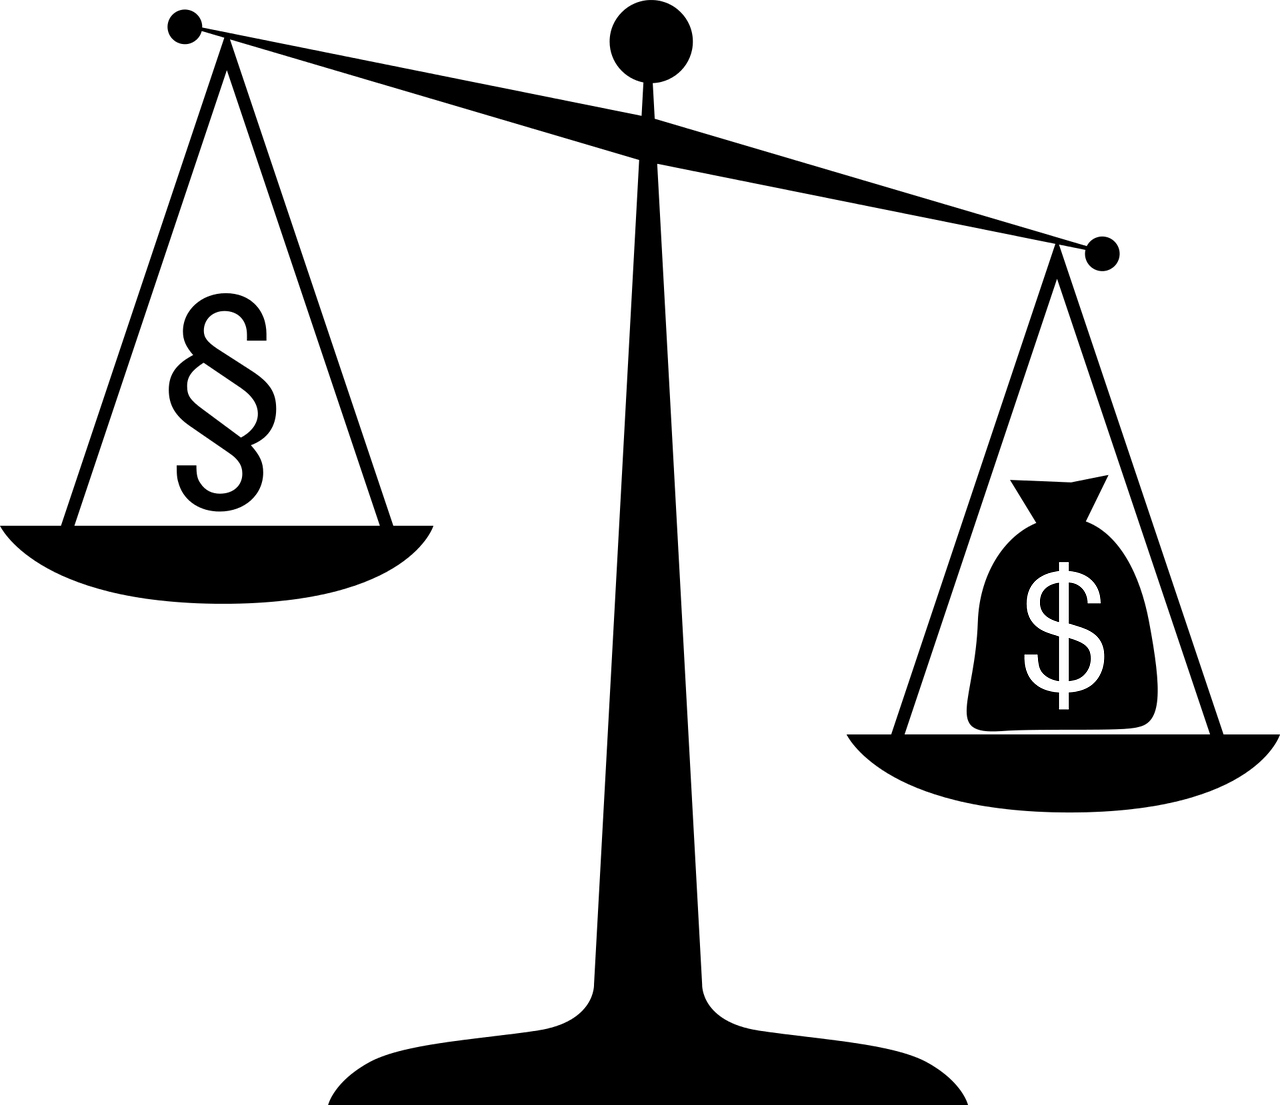 More Victims and Less Justice: The Cash Cow Criminal